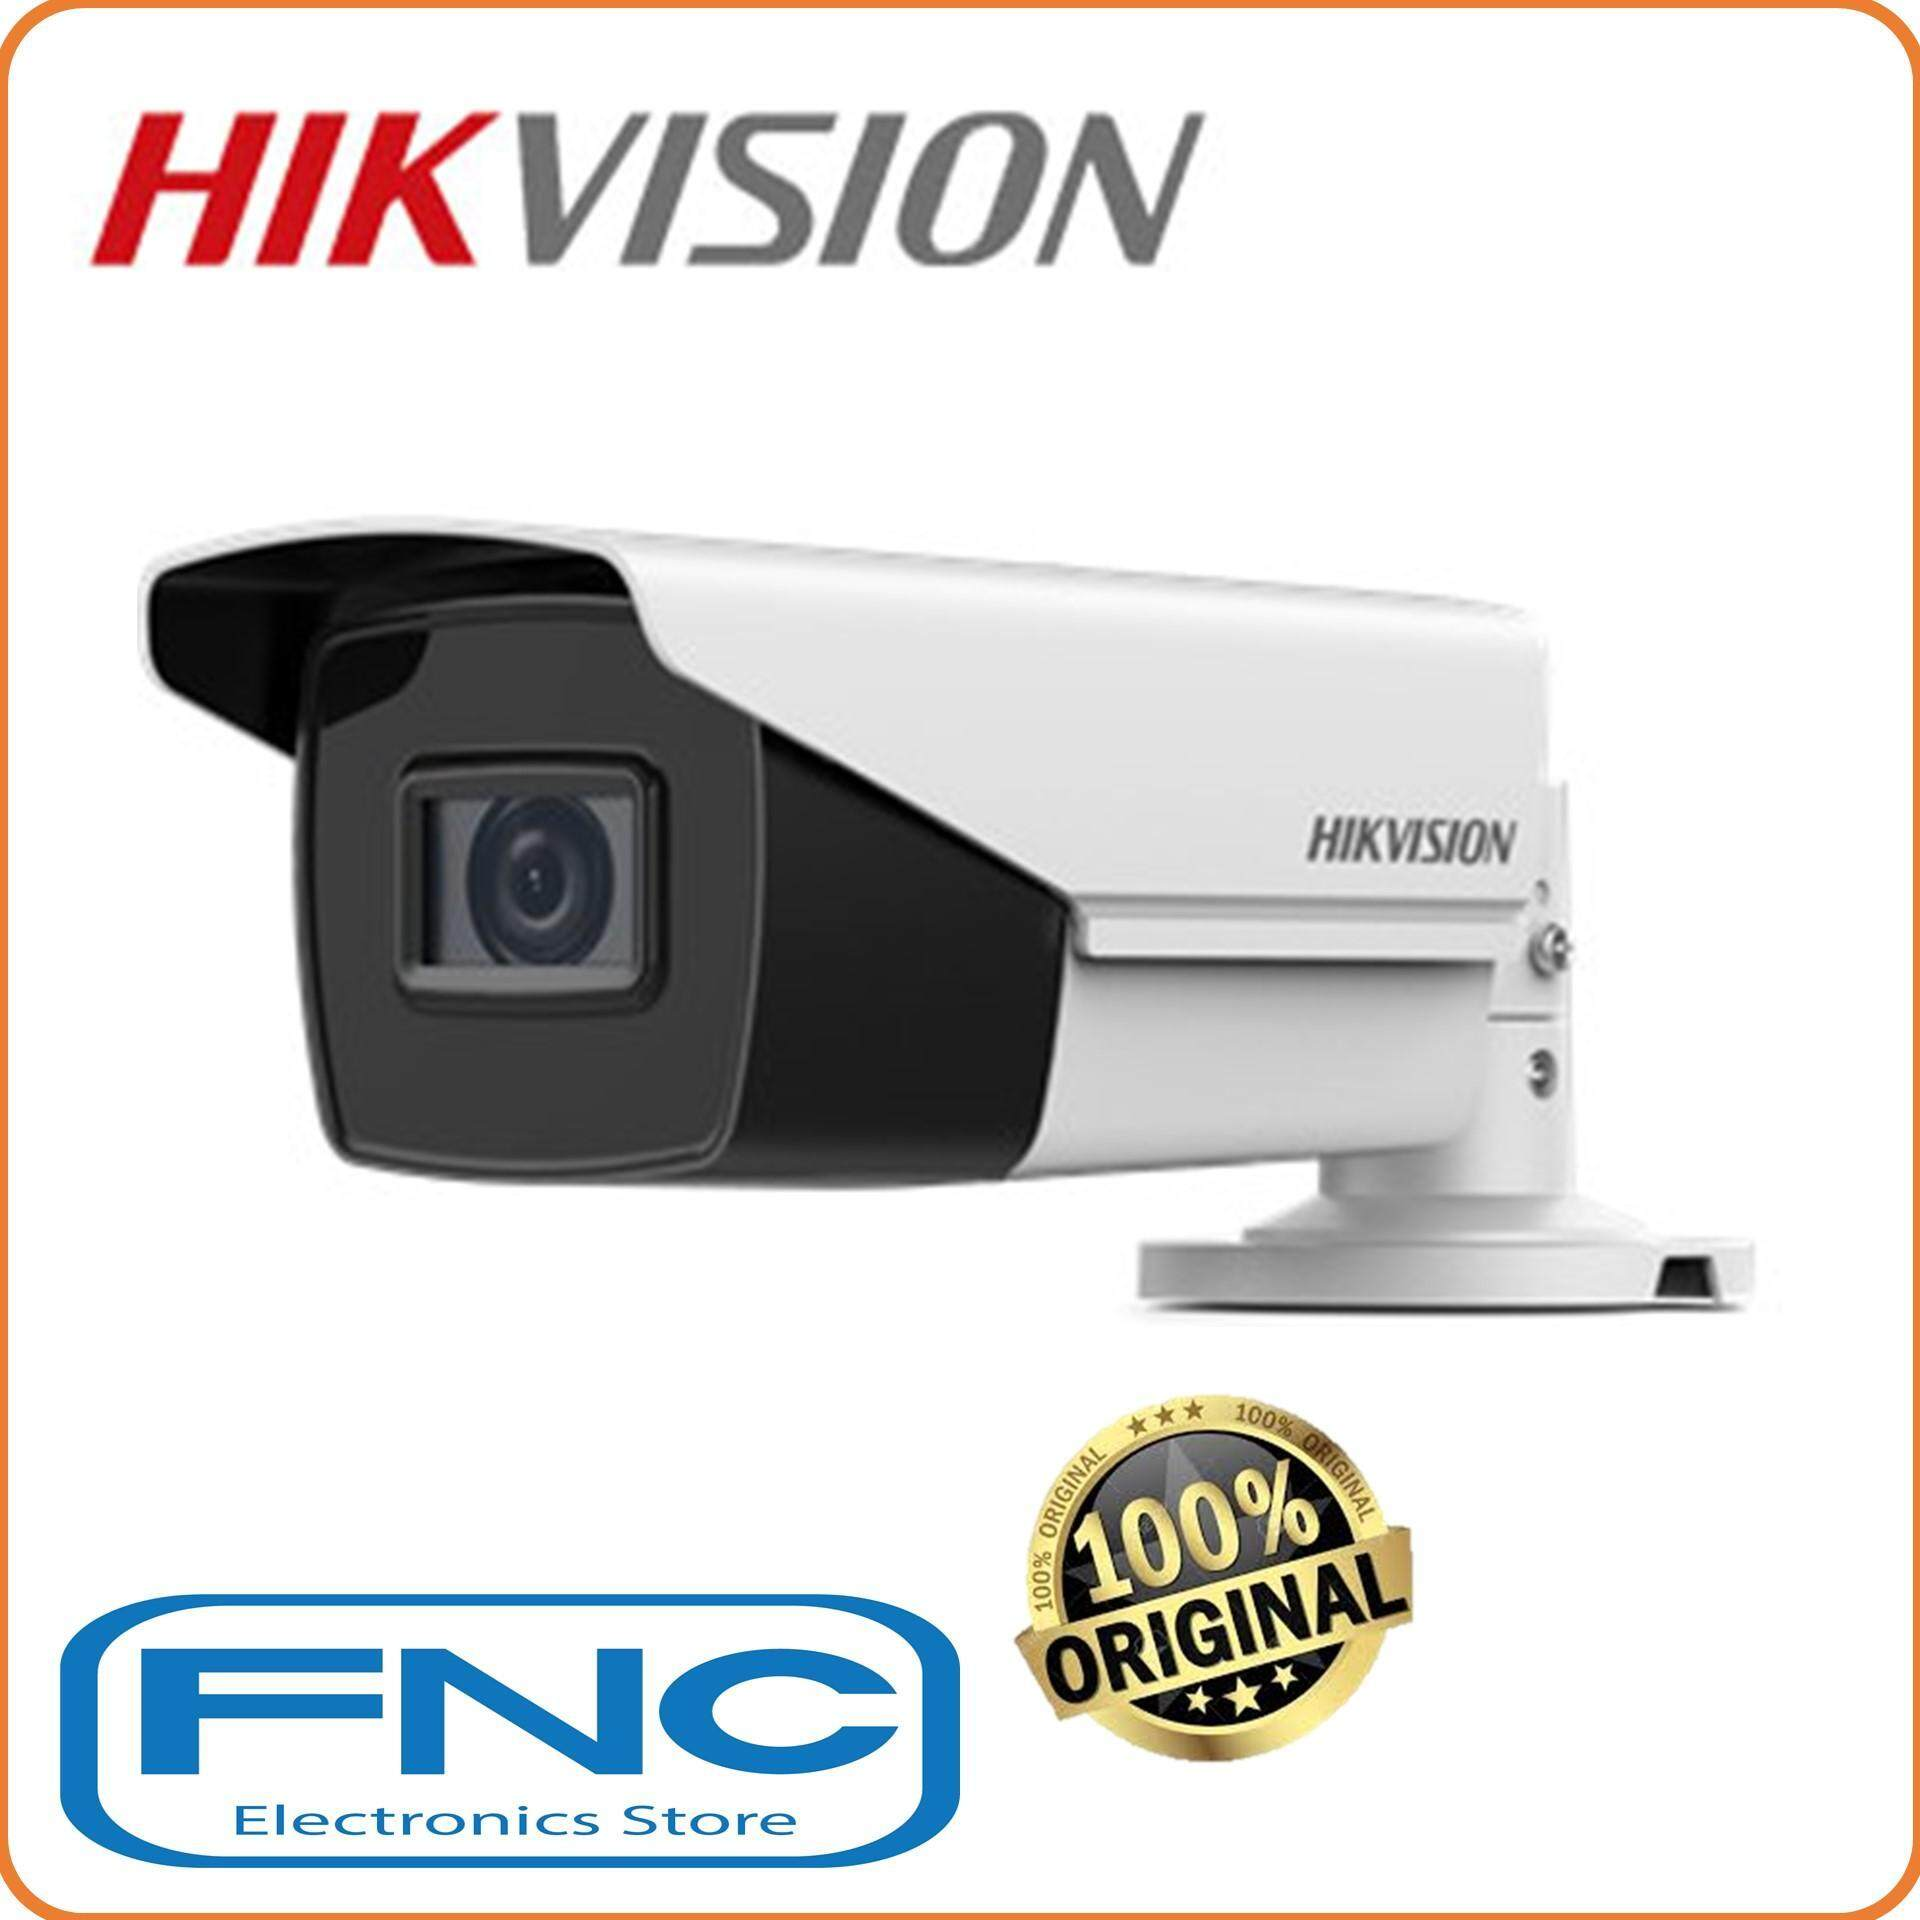 Hikvision Ds-2ce19d3t-It3zf Analog 2mp 1080p True Wdr Motorized Vari-Focal 2.7mm-13.5mm Lens 70m Ir Exir Bullet Camera By Fnc Electronics Store.